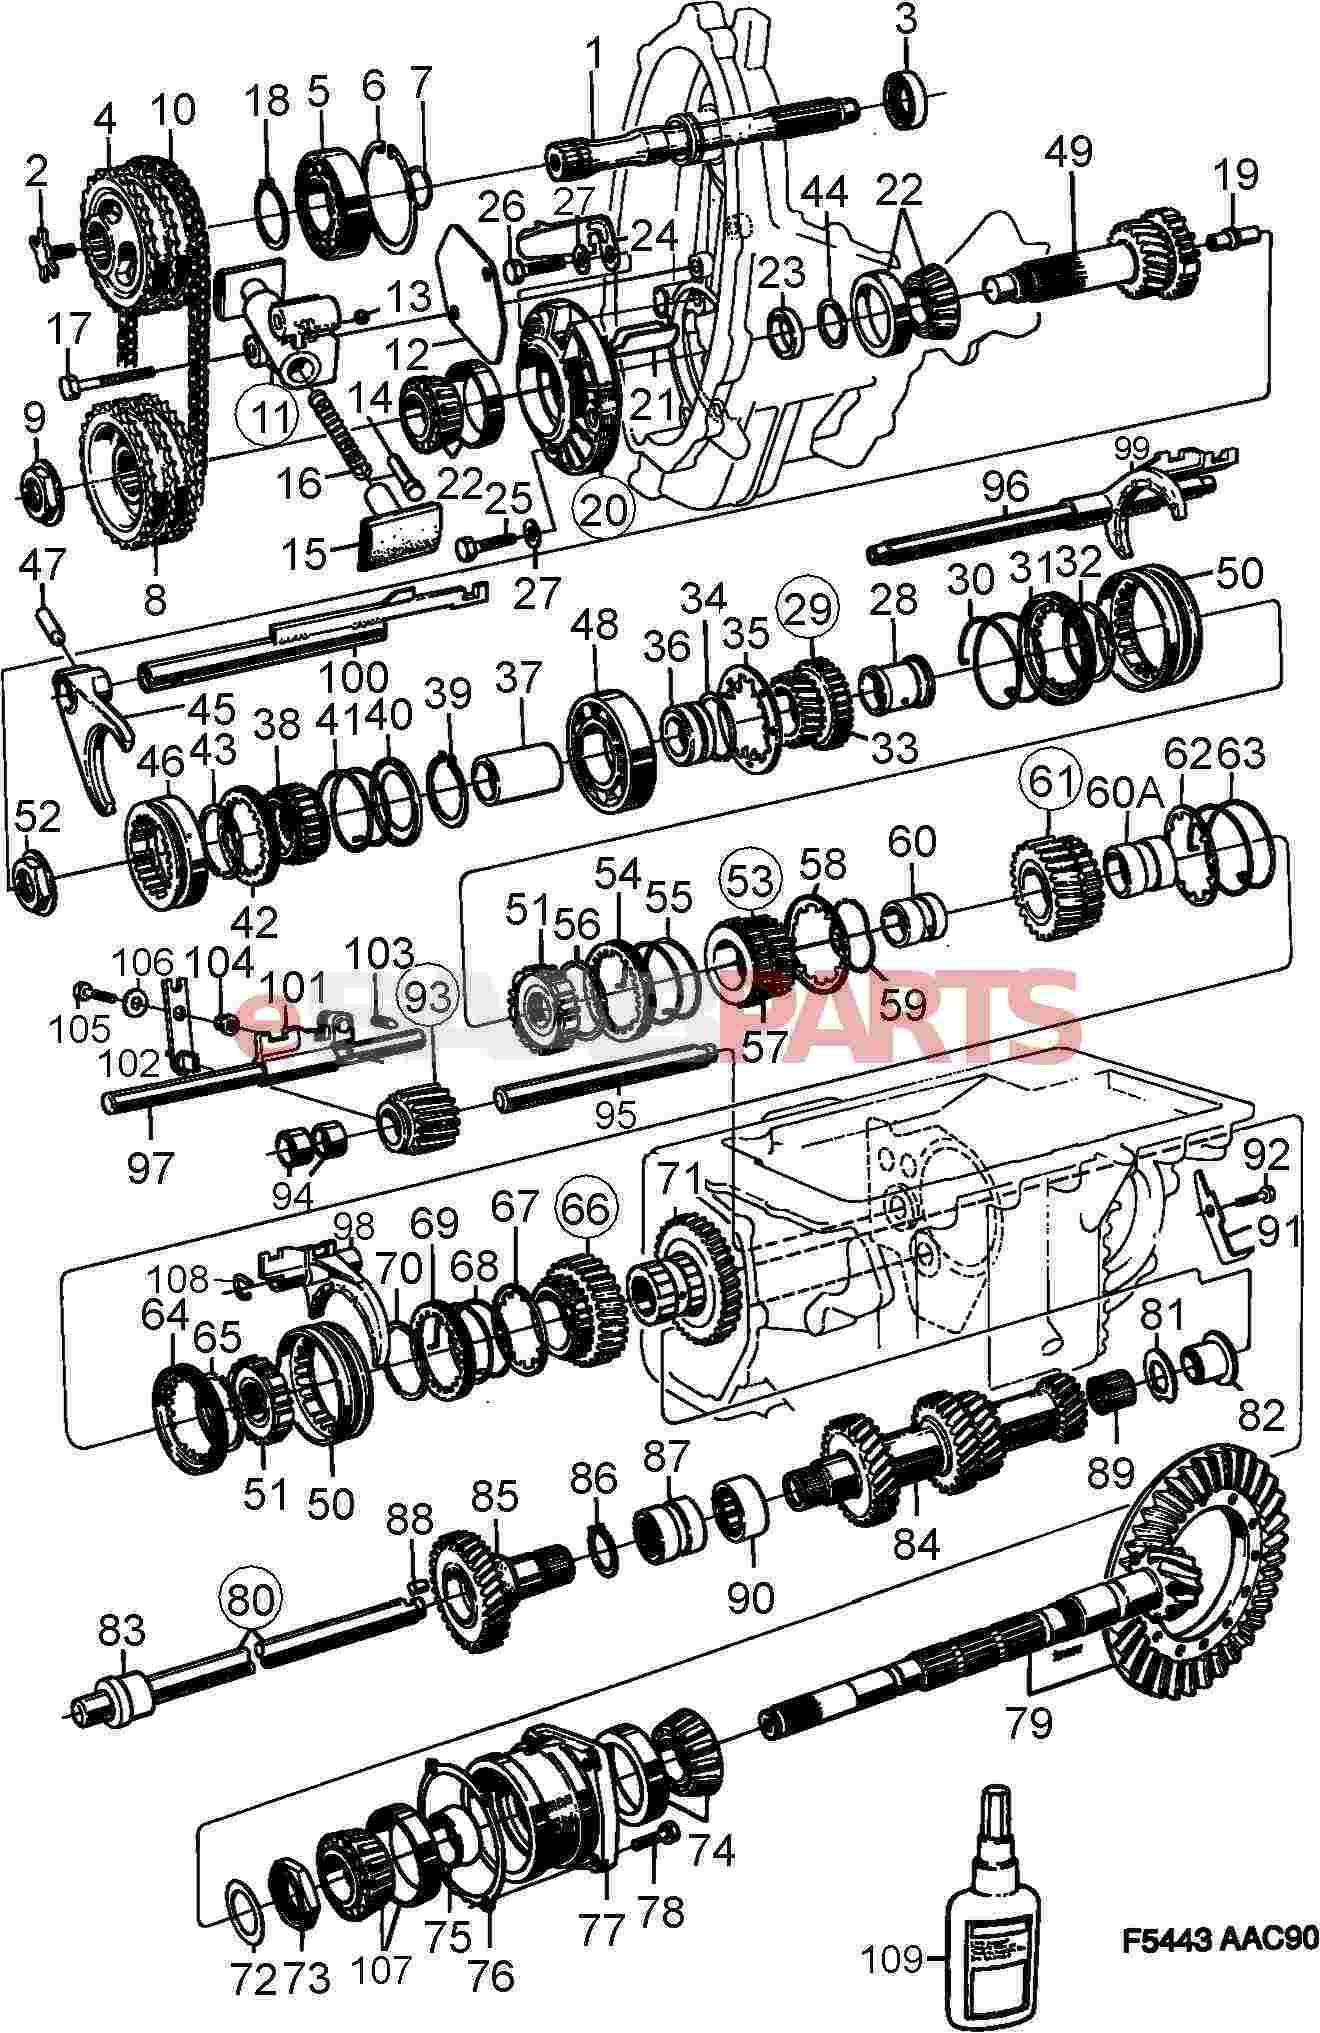 2004 Ford F 250 Sel Engine Parts Diagram on saab 900 automatic transmission problems